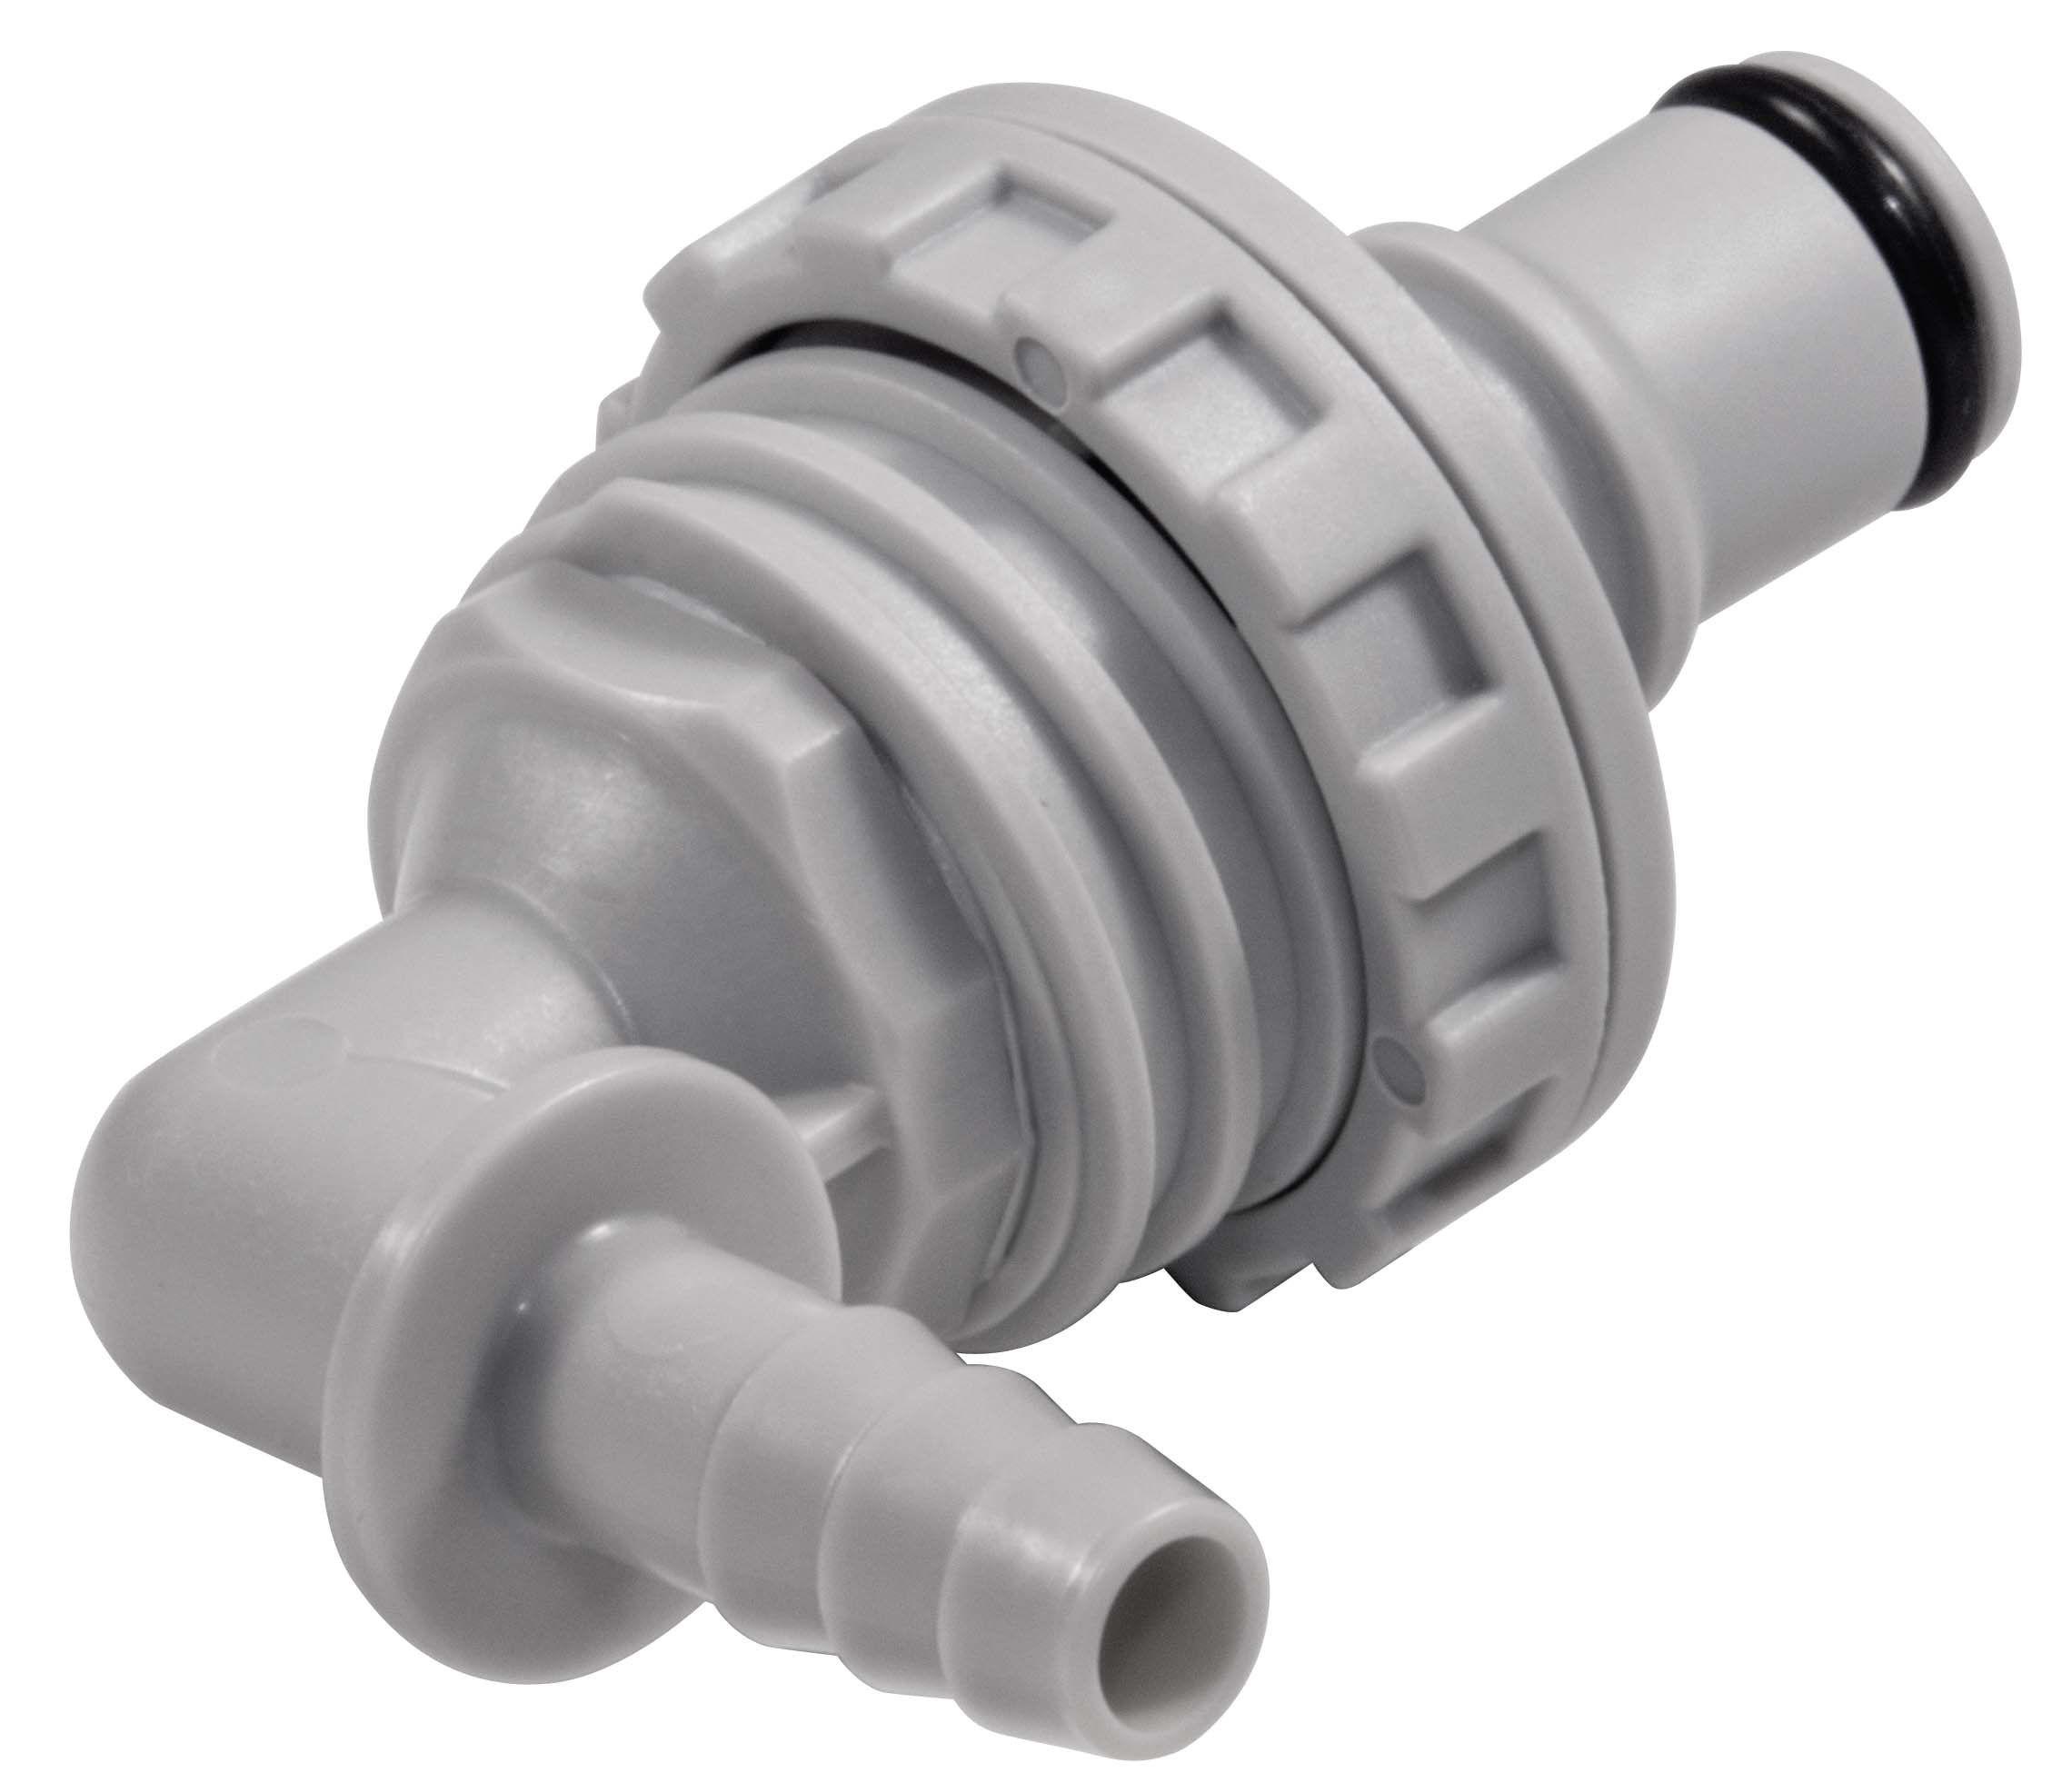 1/4 Hose Barb Valved Panel Mount Elbow Coupling Insert